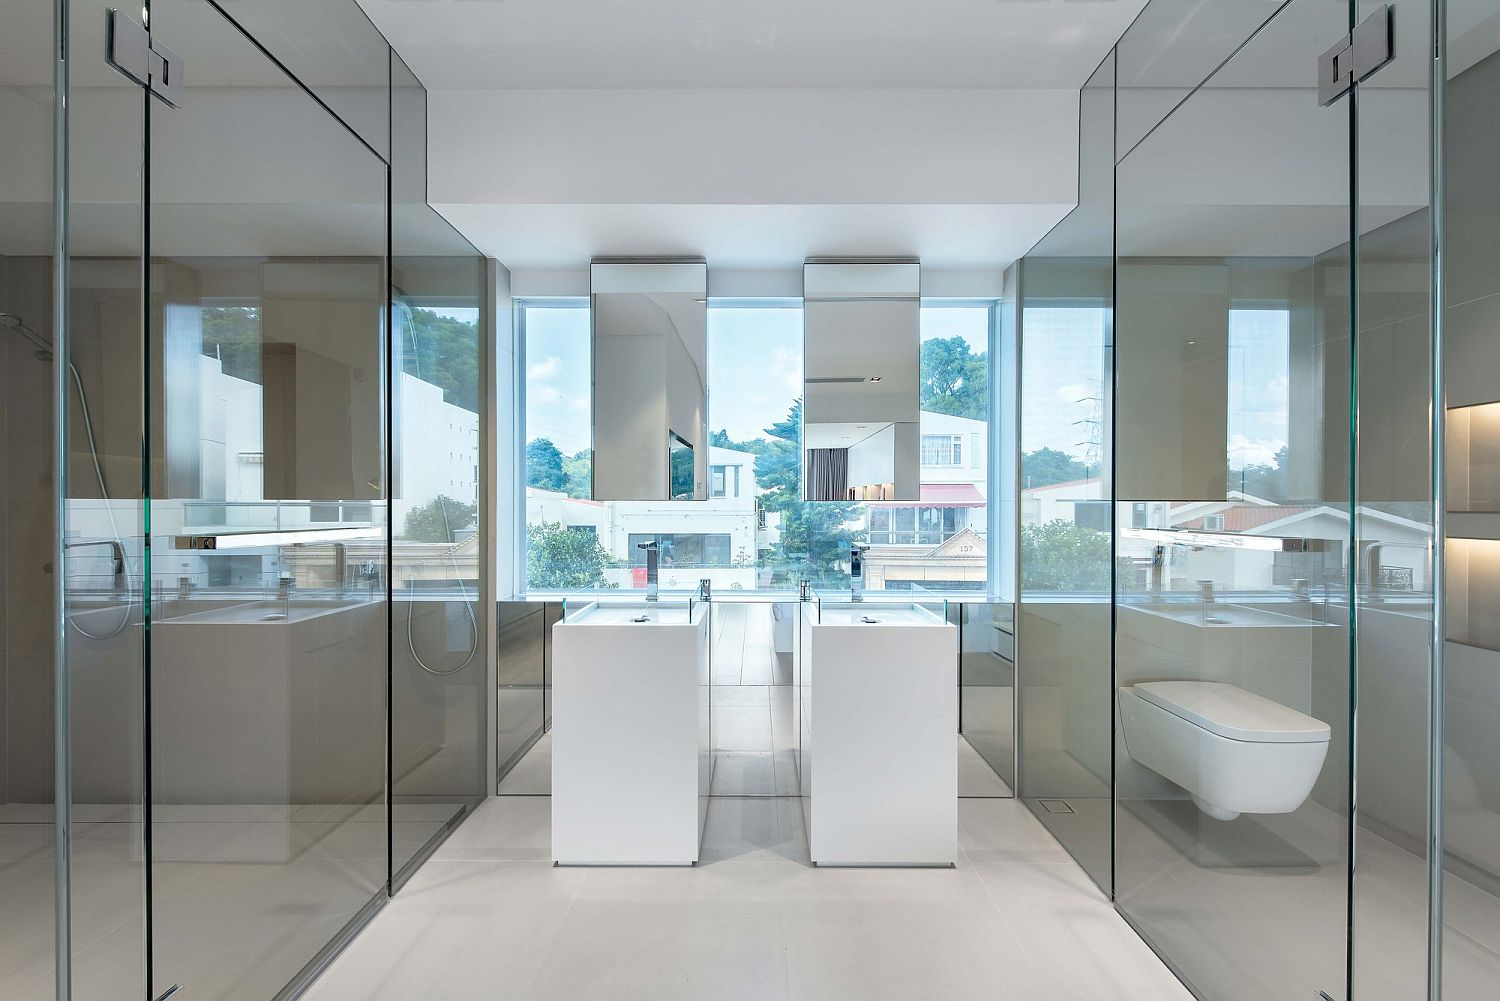 Polished-bathroom-of-the-modern-home-in-white